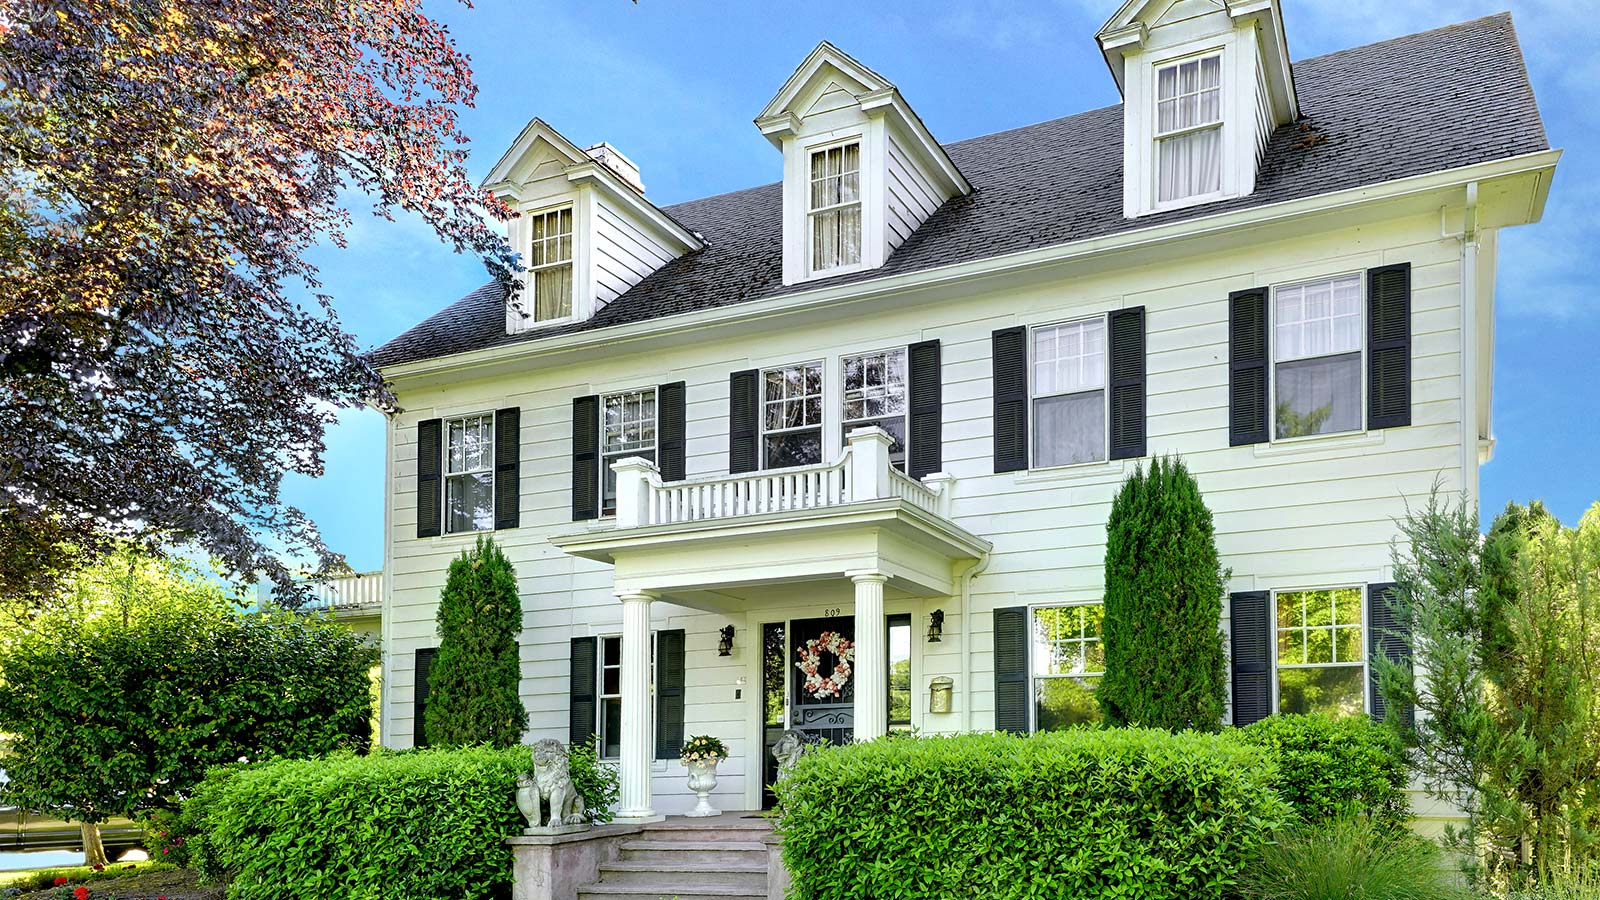 The best McMinnville restaurants are just a short walk from our McMinnville Bed and Breakfast